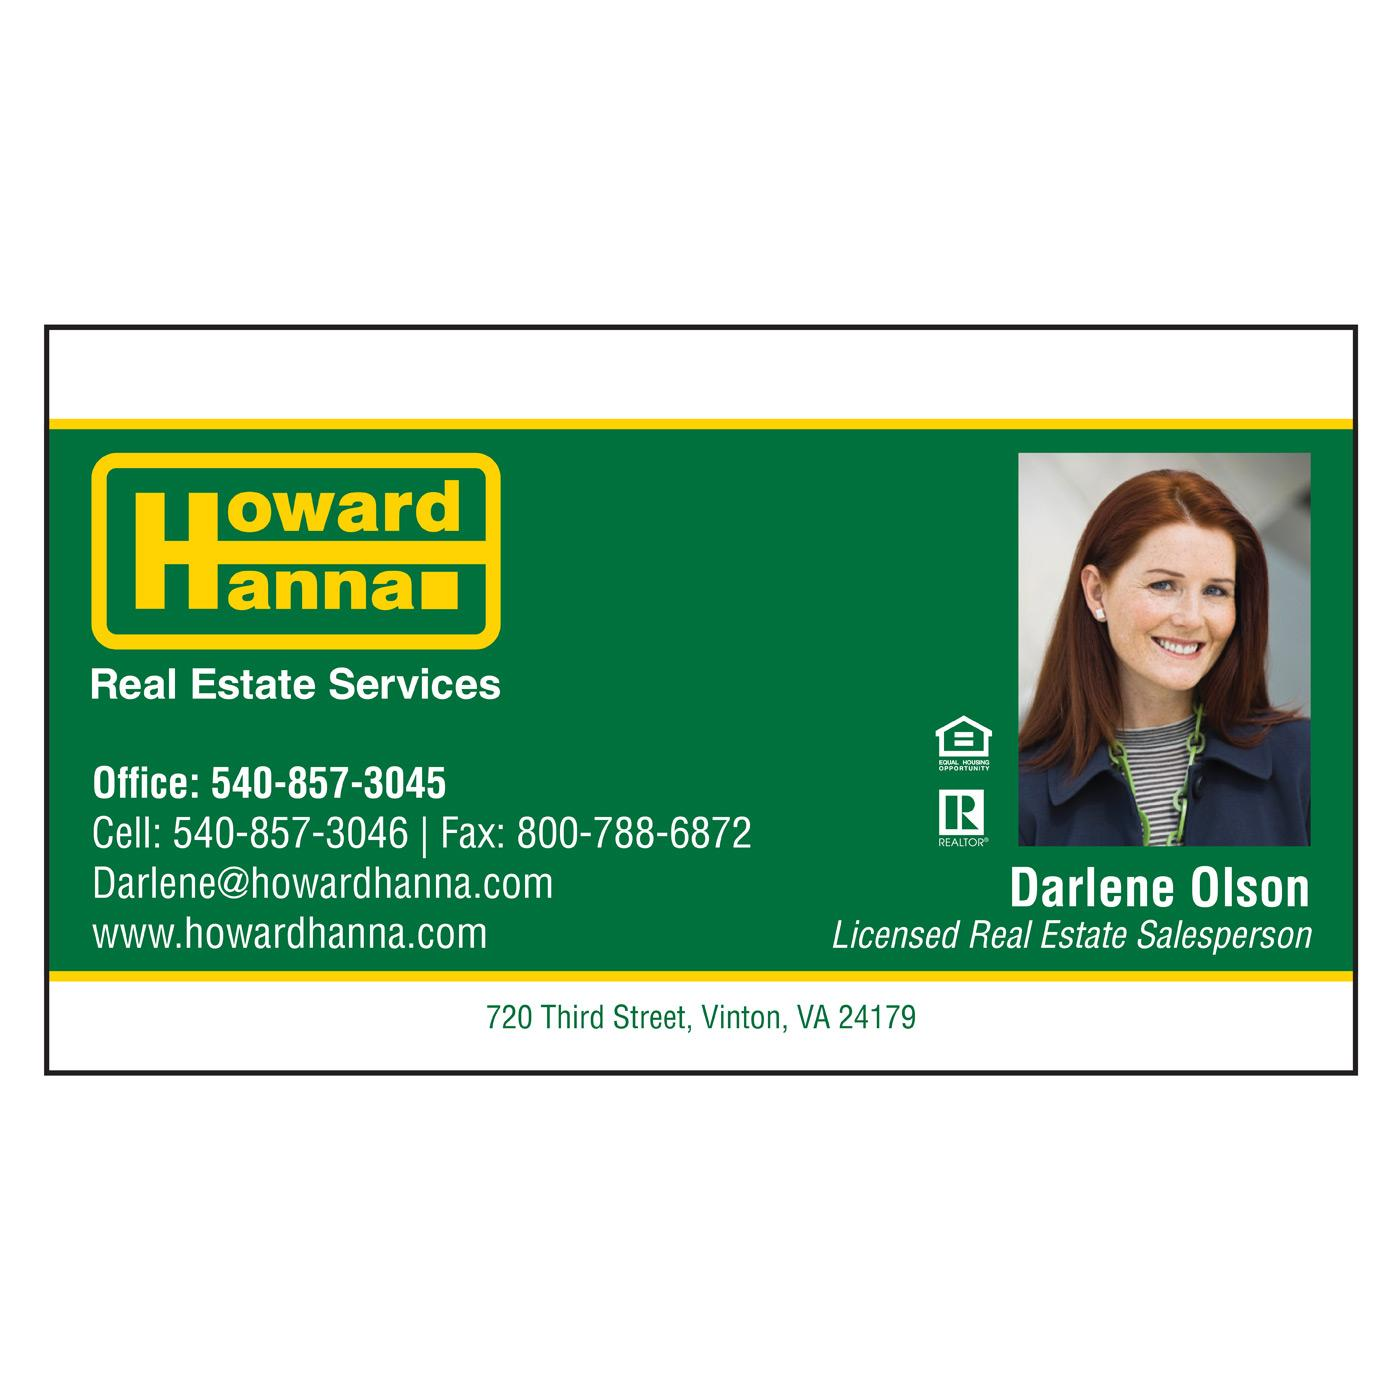 Howard Hanna Business Card